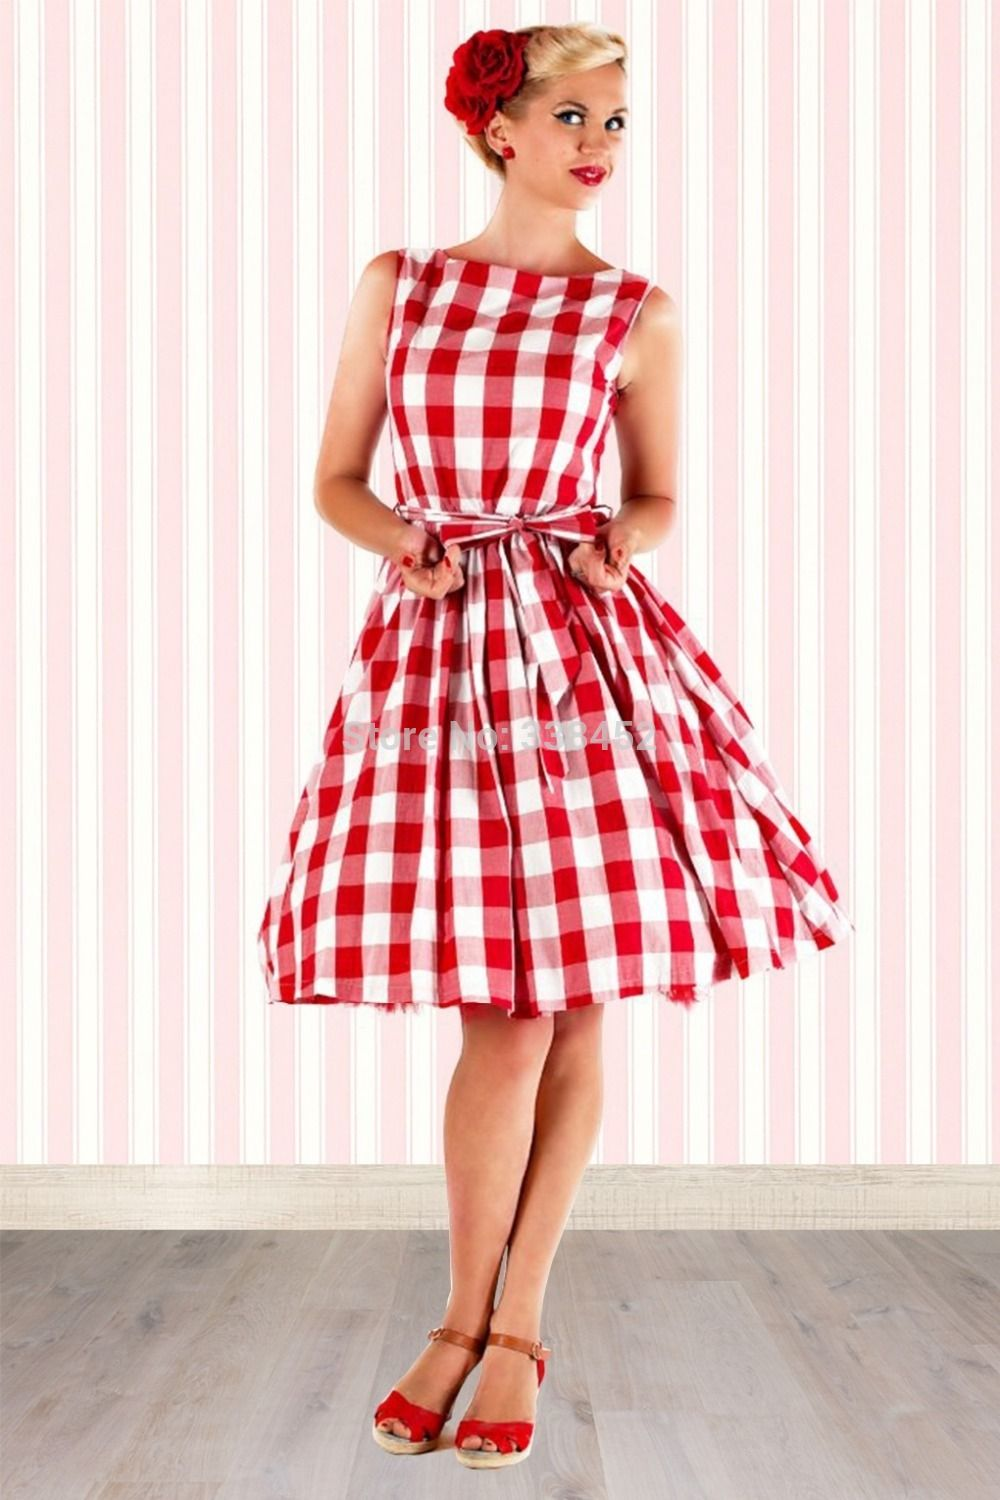 Rockabilly Hepburn classique iconique Rouge Style Blanc Cute Vintage 1950  Vérifié Vichy Imprimer Retro swing Jive Robe Picnic Party(China (Mainland))  Plus